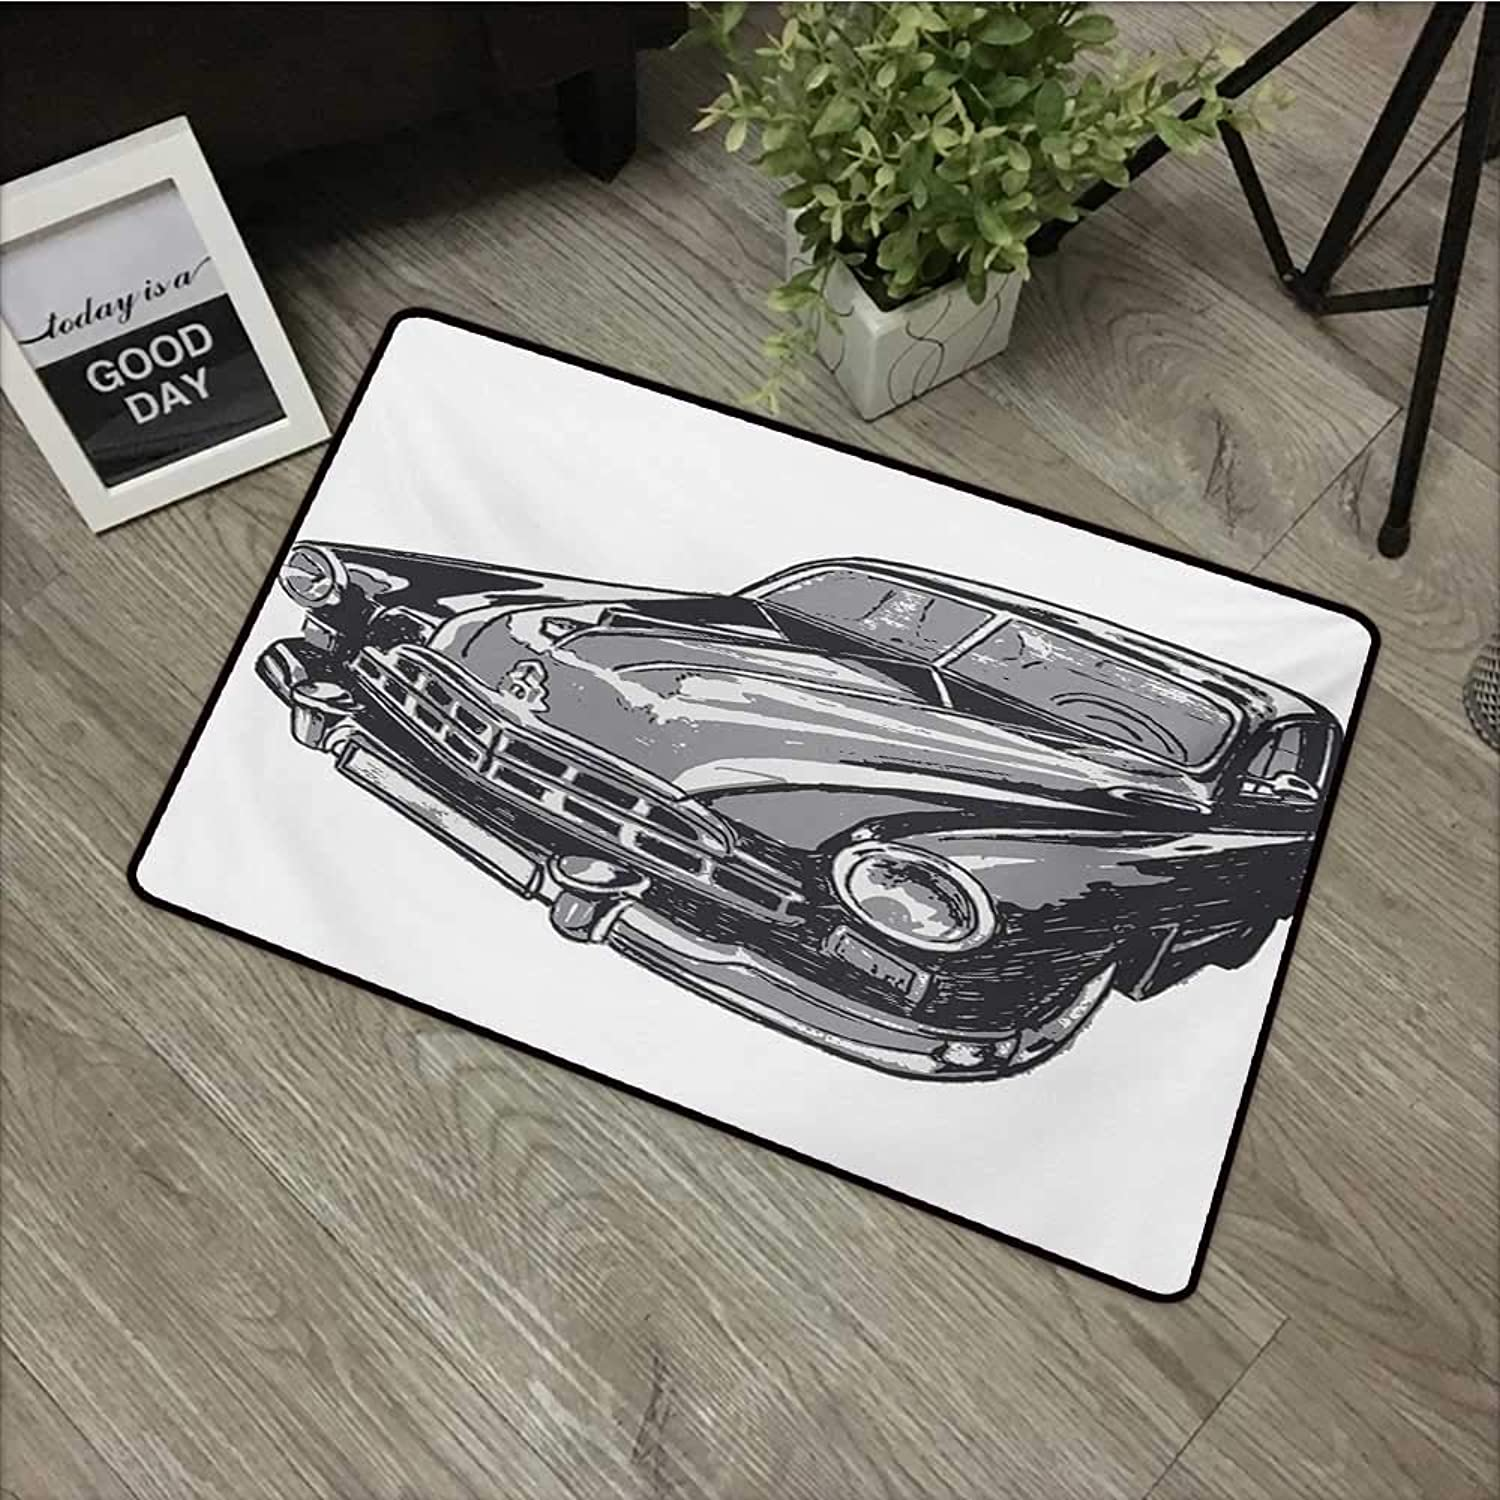 Interior mat W35 x L59 INCH Cars,Hand Drawn Vintage Vehicle with Detailed Front Part Hood Lamps Rear View Mirror,Grey bluee Grey with Non-Slip Backing Door Mat Carpet